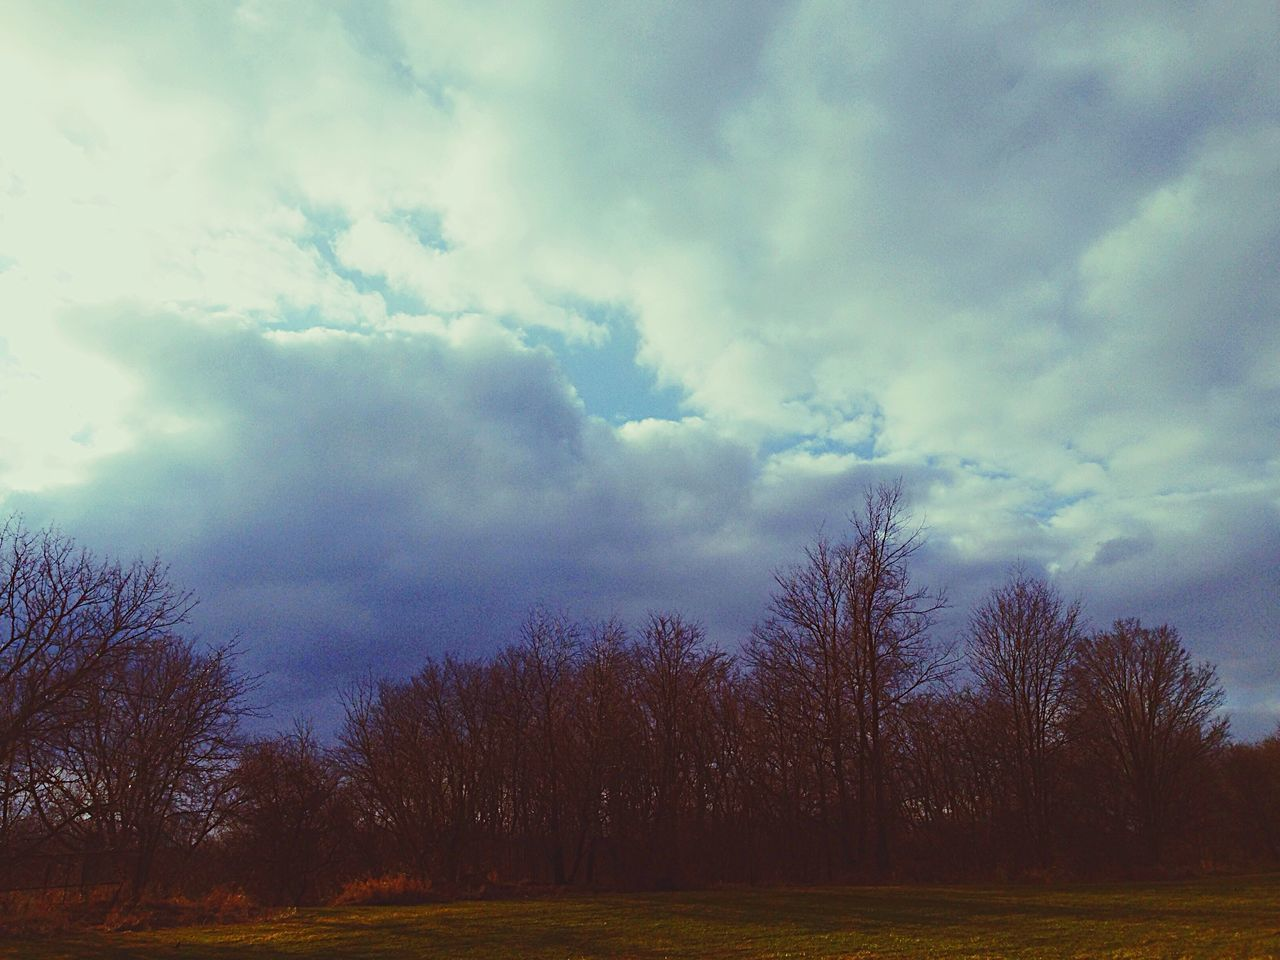 tree, sky, cloud - sky, nature, tranquility, beauty in nature, scenics, tranquil scene, no people, landscape, outdoors, bare tree, day